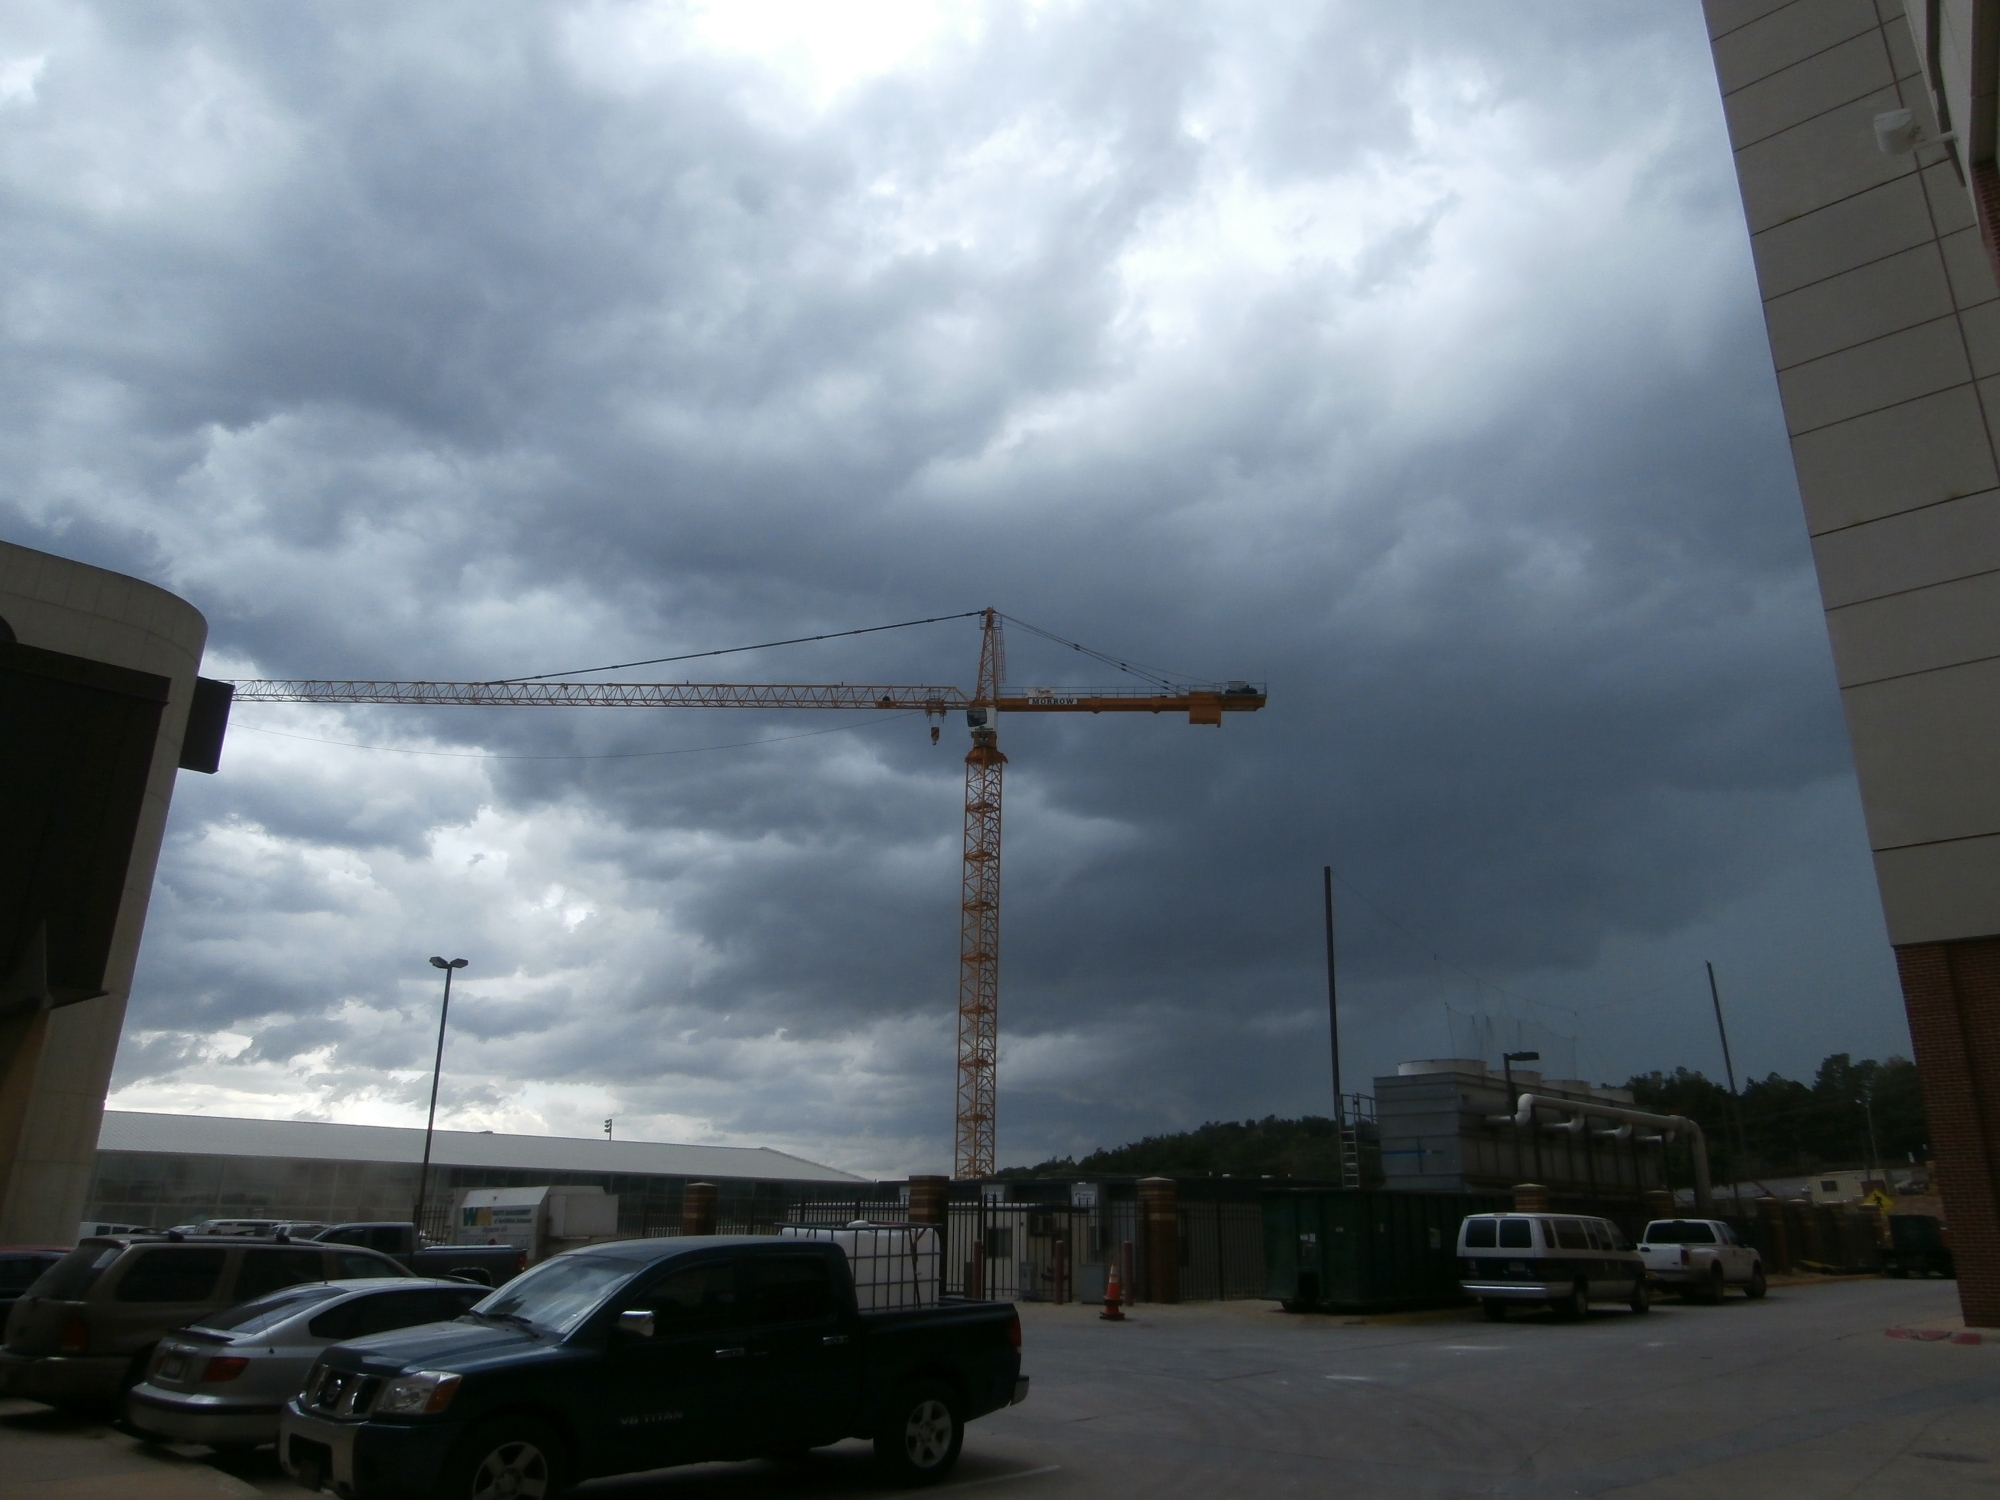 Storm clouds over future Razorback Football Center